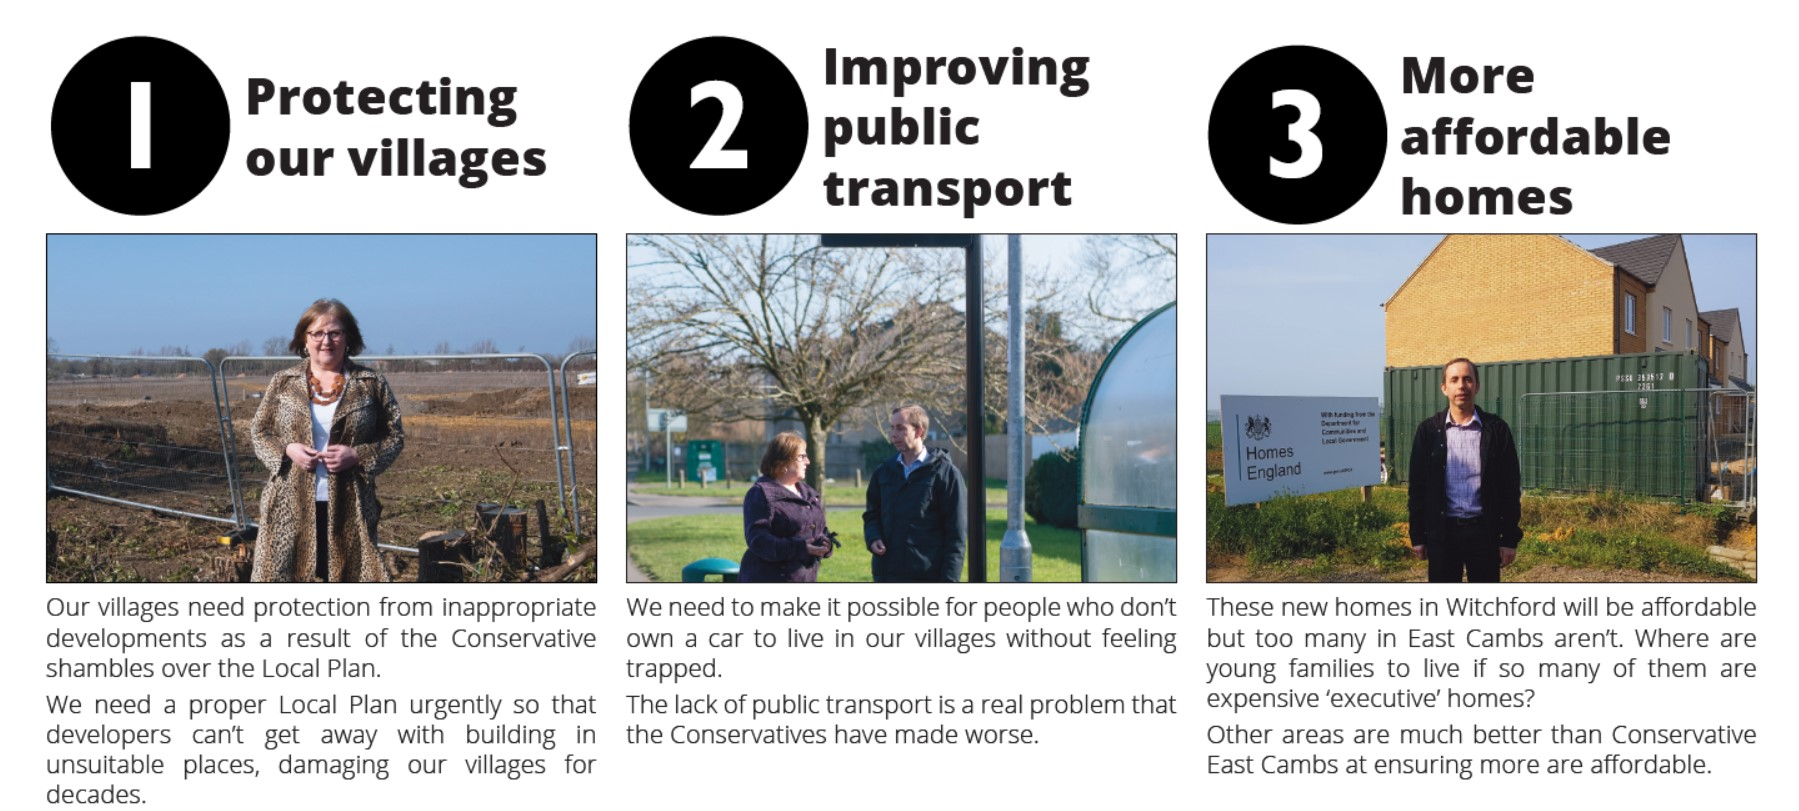 Protecting our villages, Improving Public Transport and More afordable homes